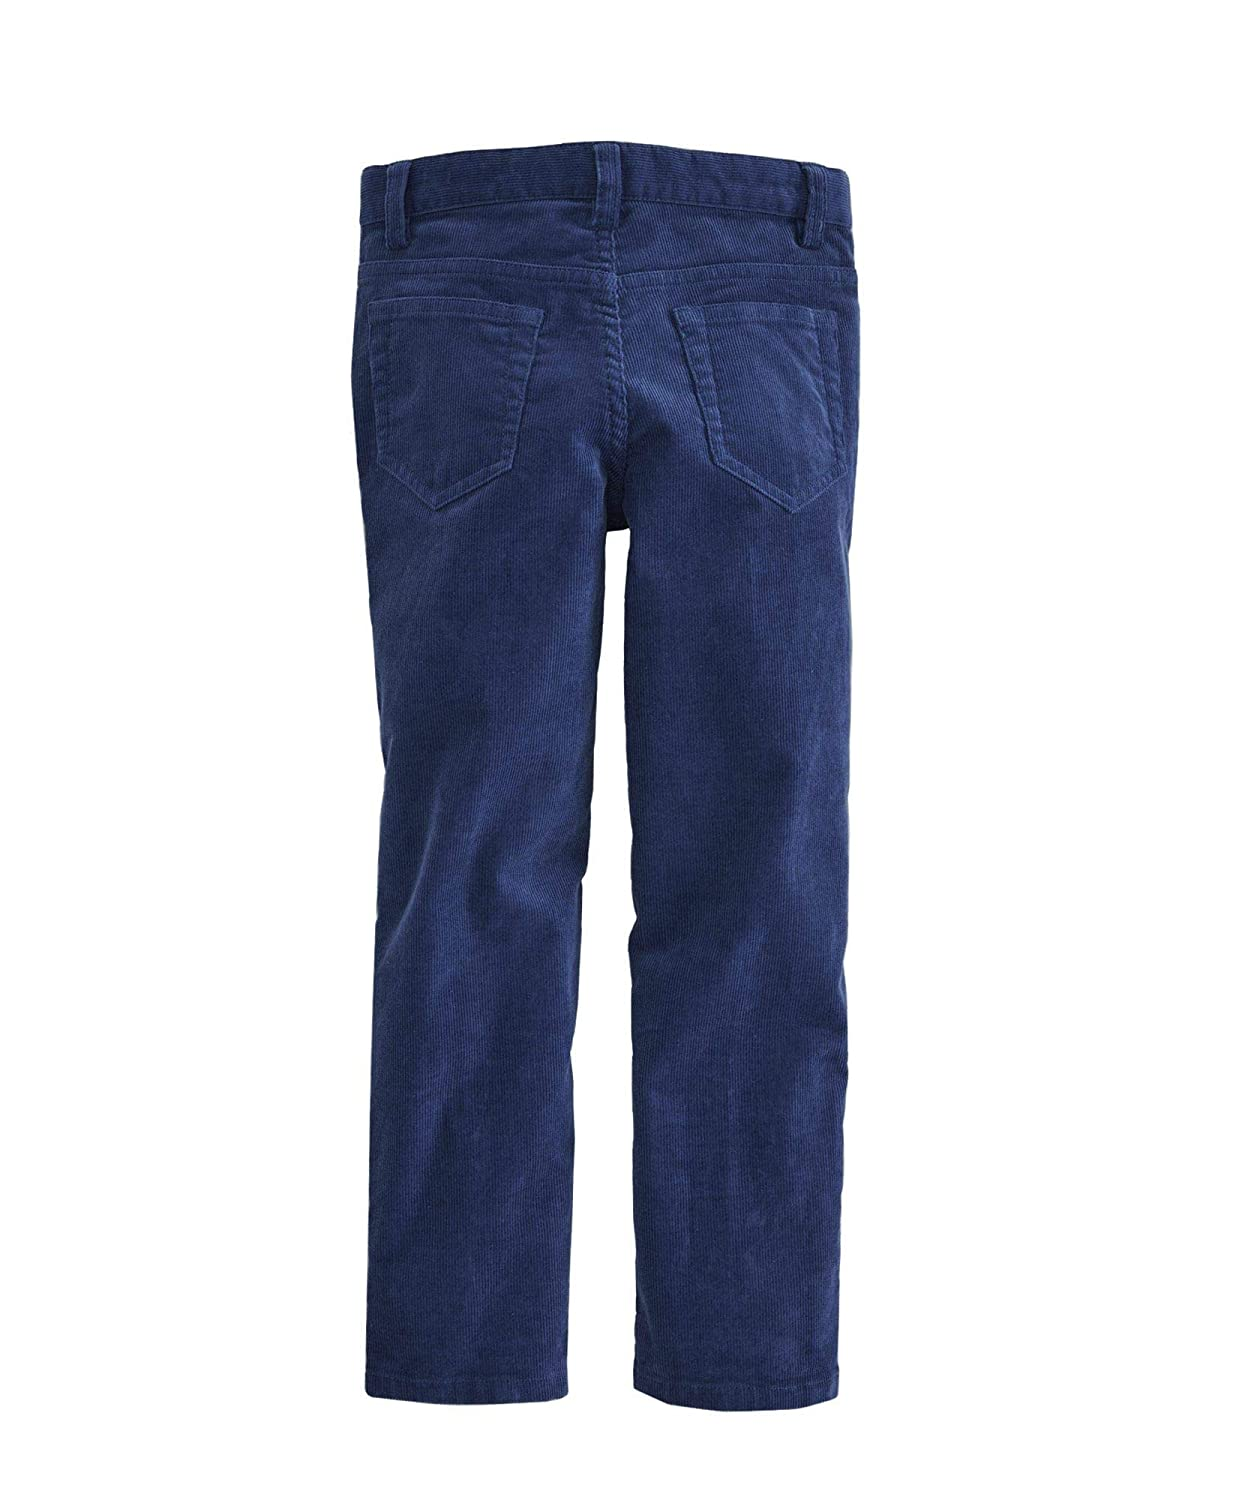 Vineyard Vines Boys Boys 5 Pocket Corduroy Blue Pants 6